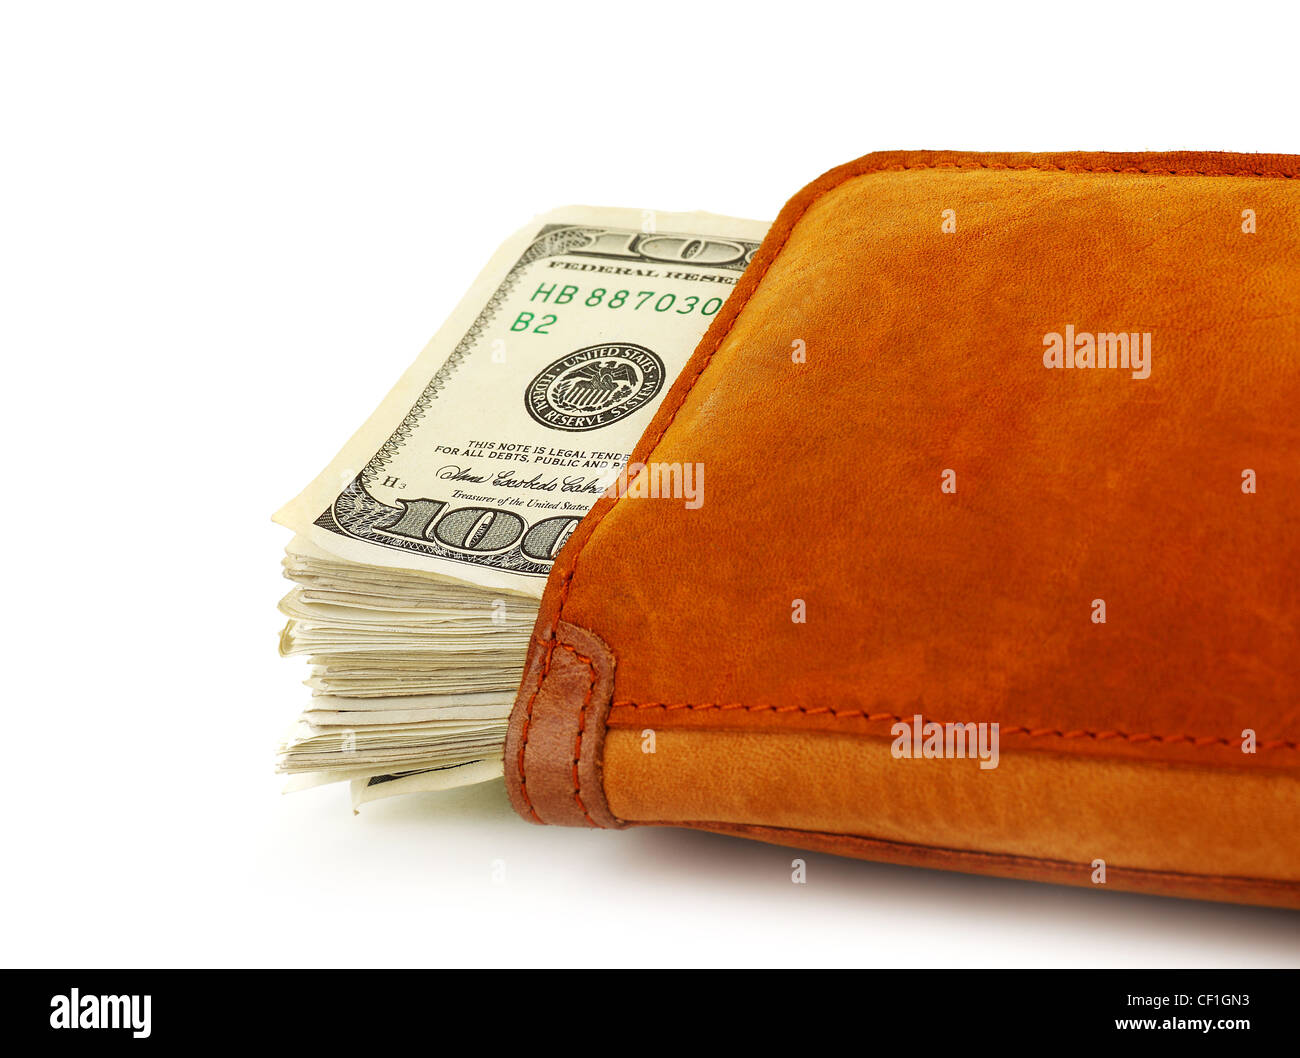 Hundred dollar banknotes in a purse isolated on white, conceptual image of saving, making & spending cash money - Stock Image